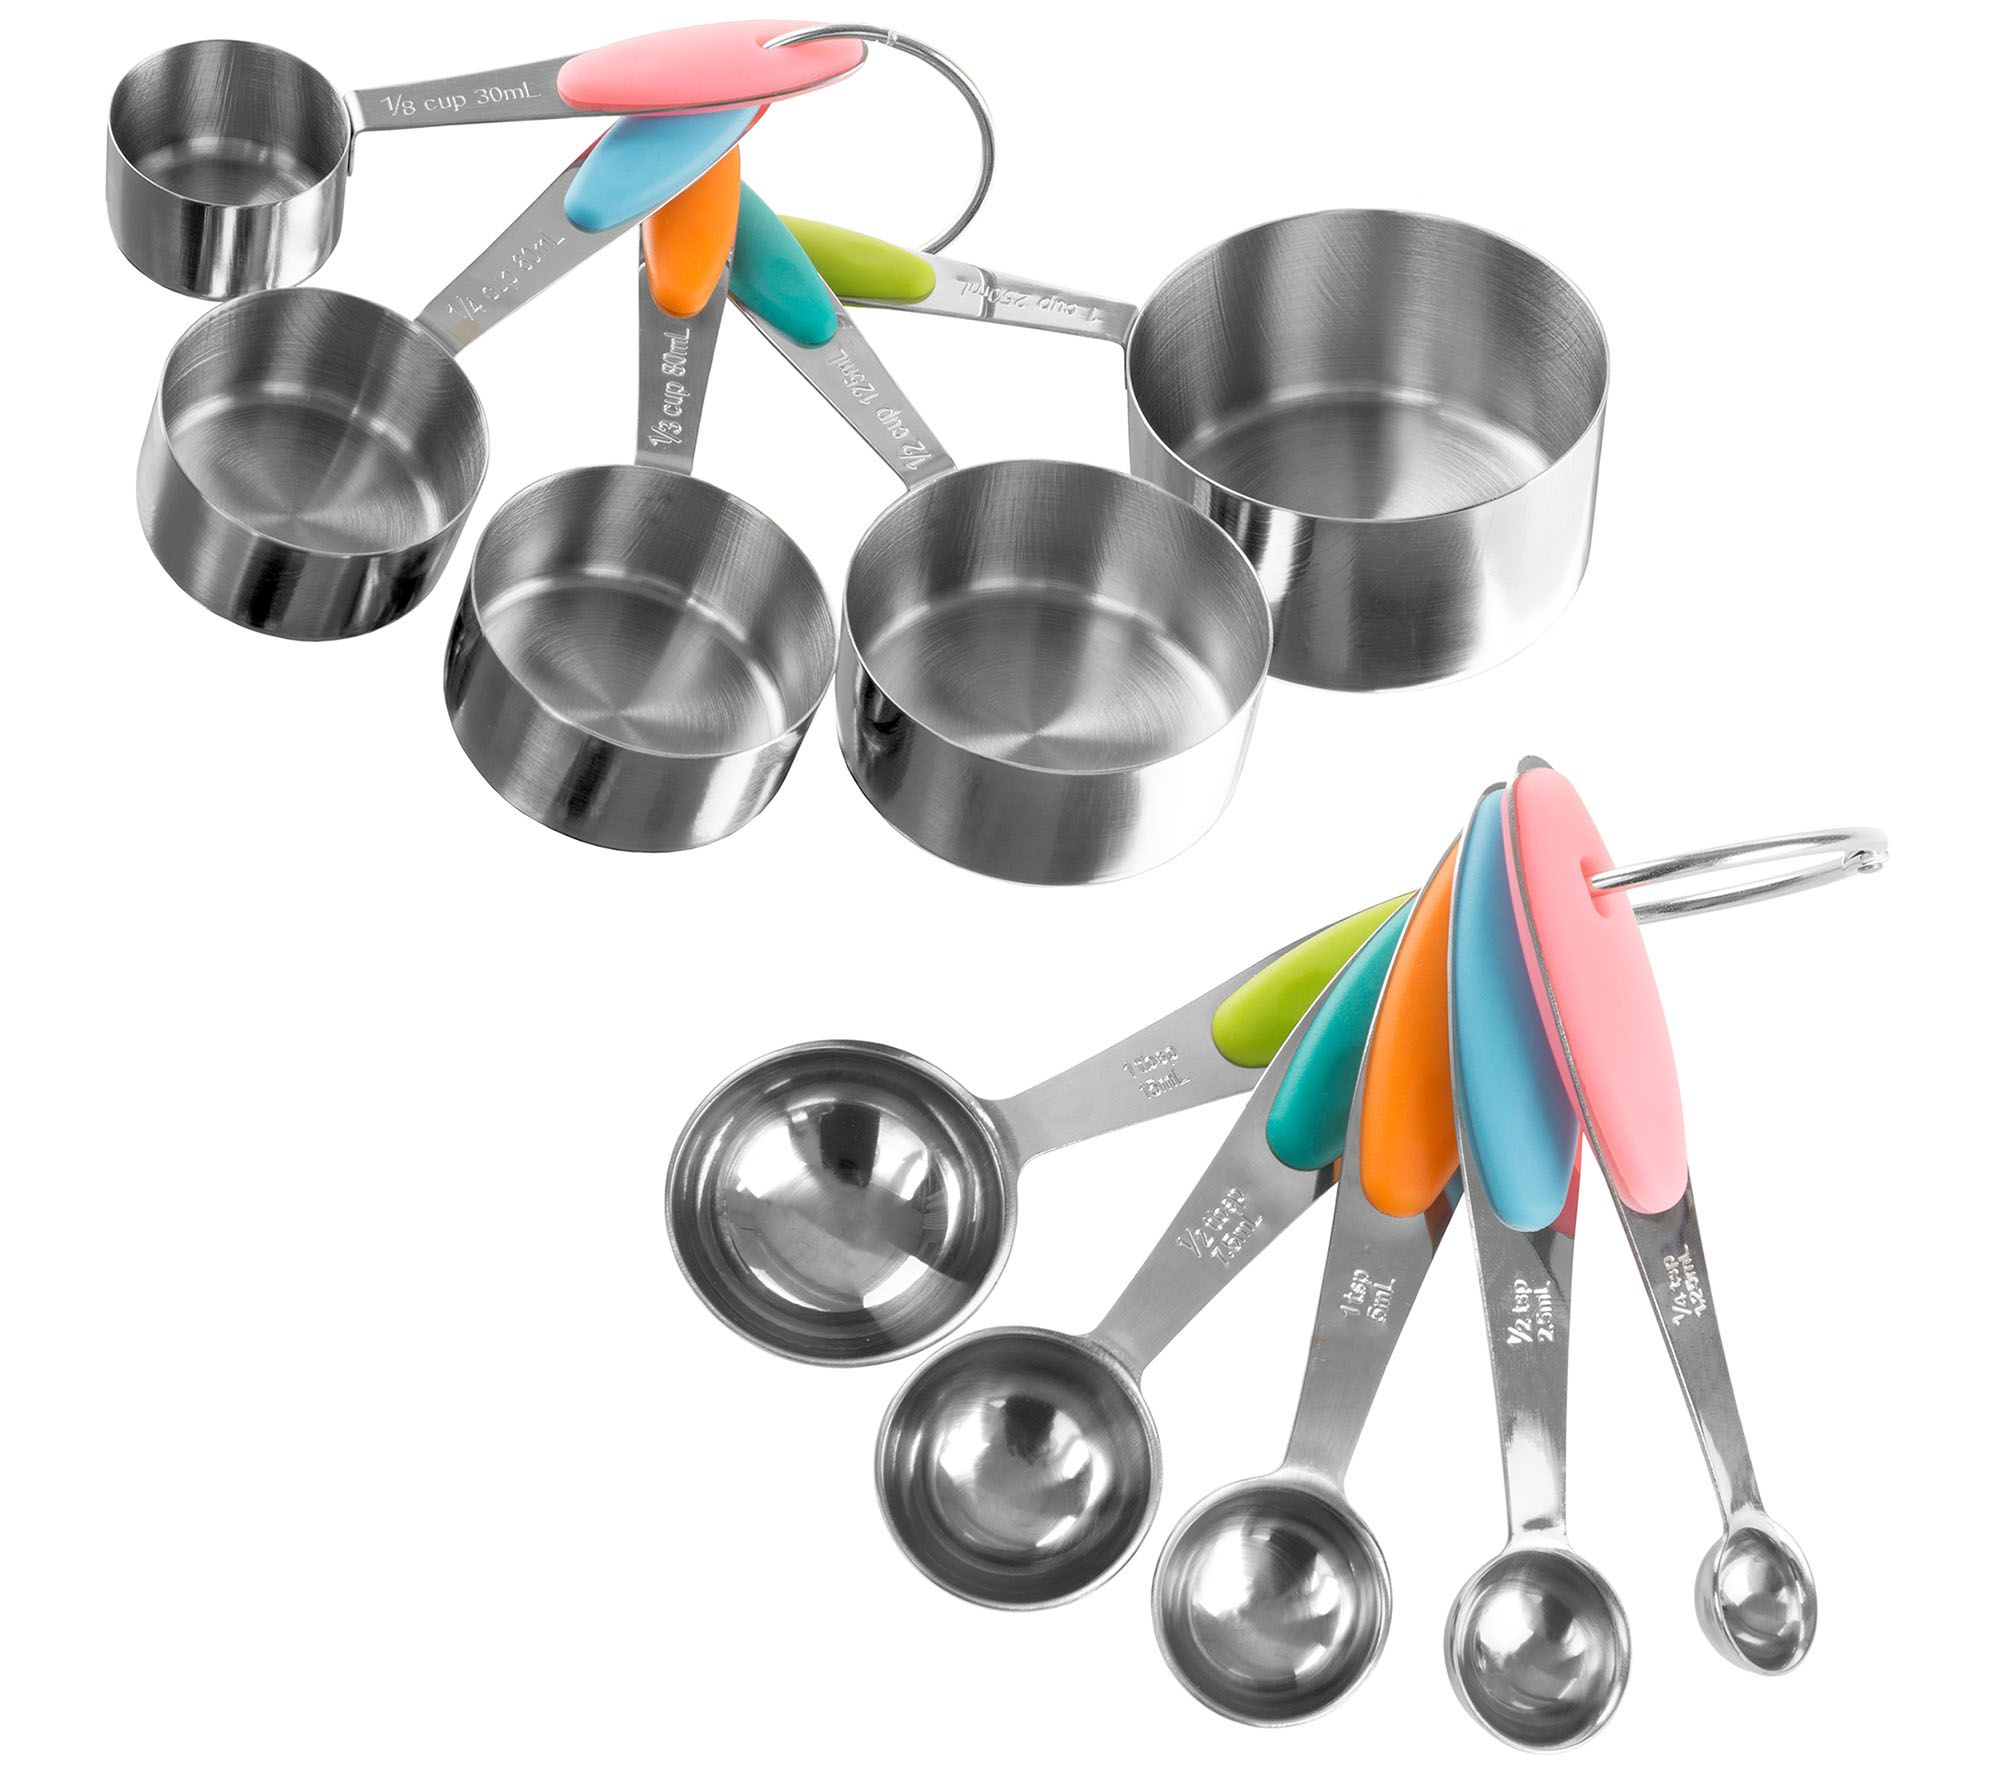 japan import Oxo Good Grips Stainless Steel Measuring Ladle Kitchen